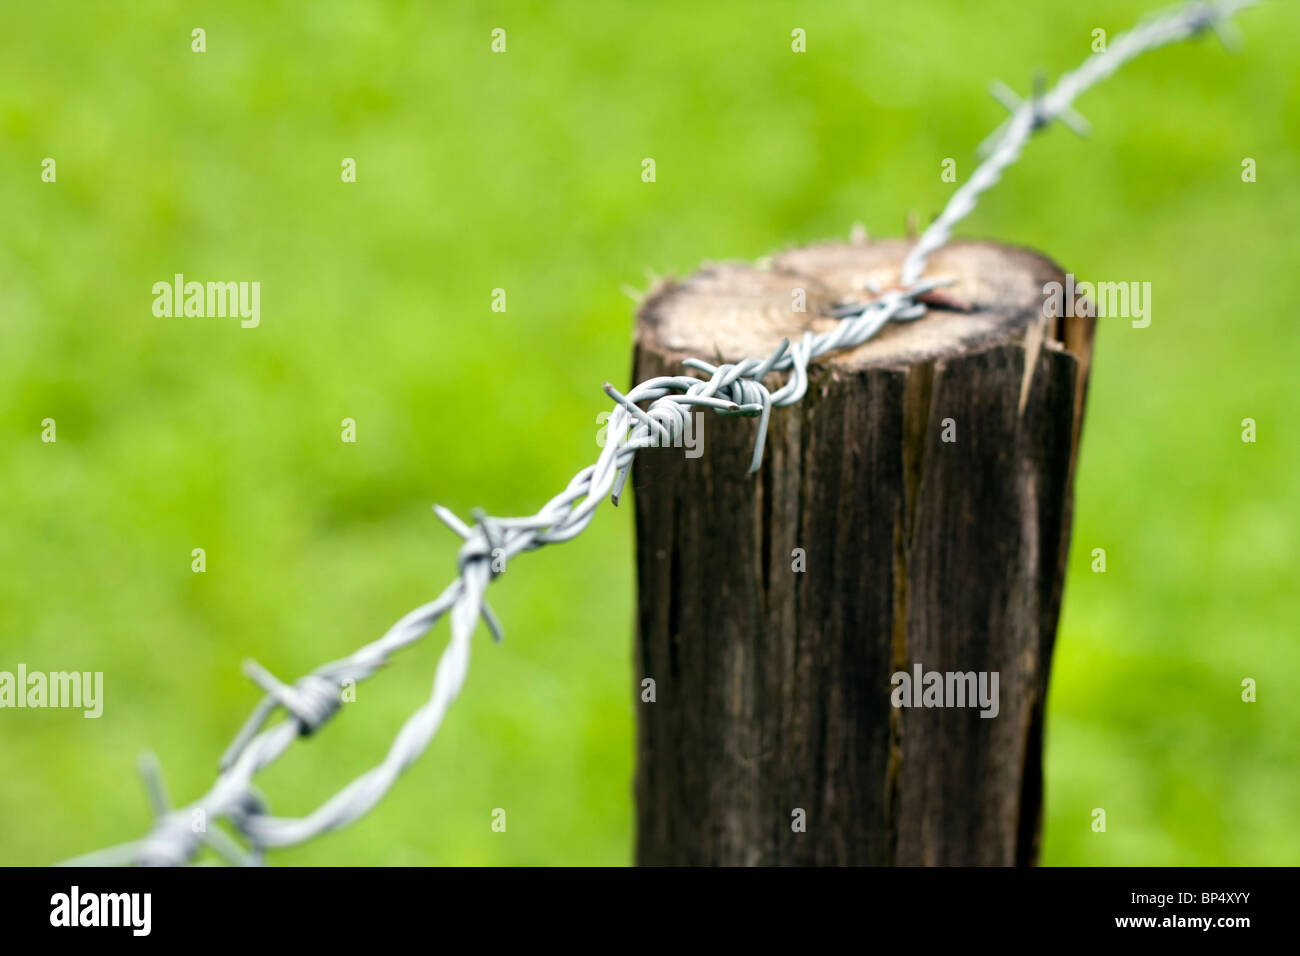 Detail of the simple barb wire. - Stock Image